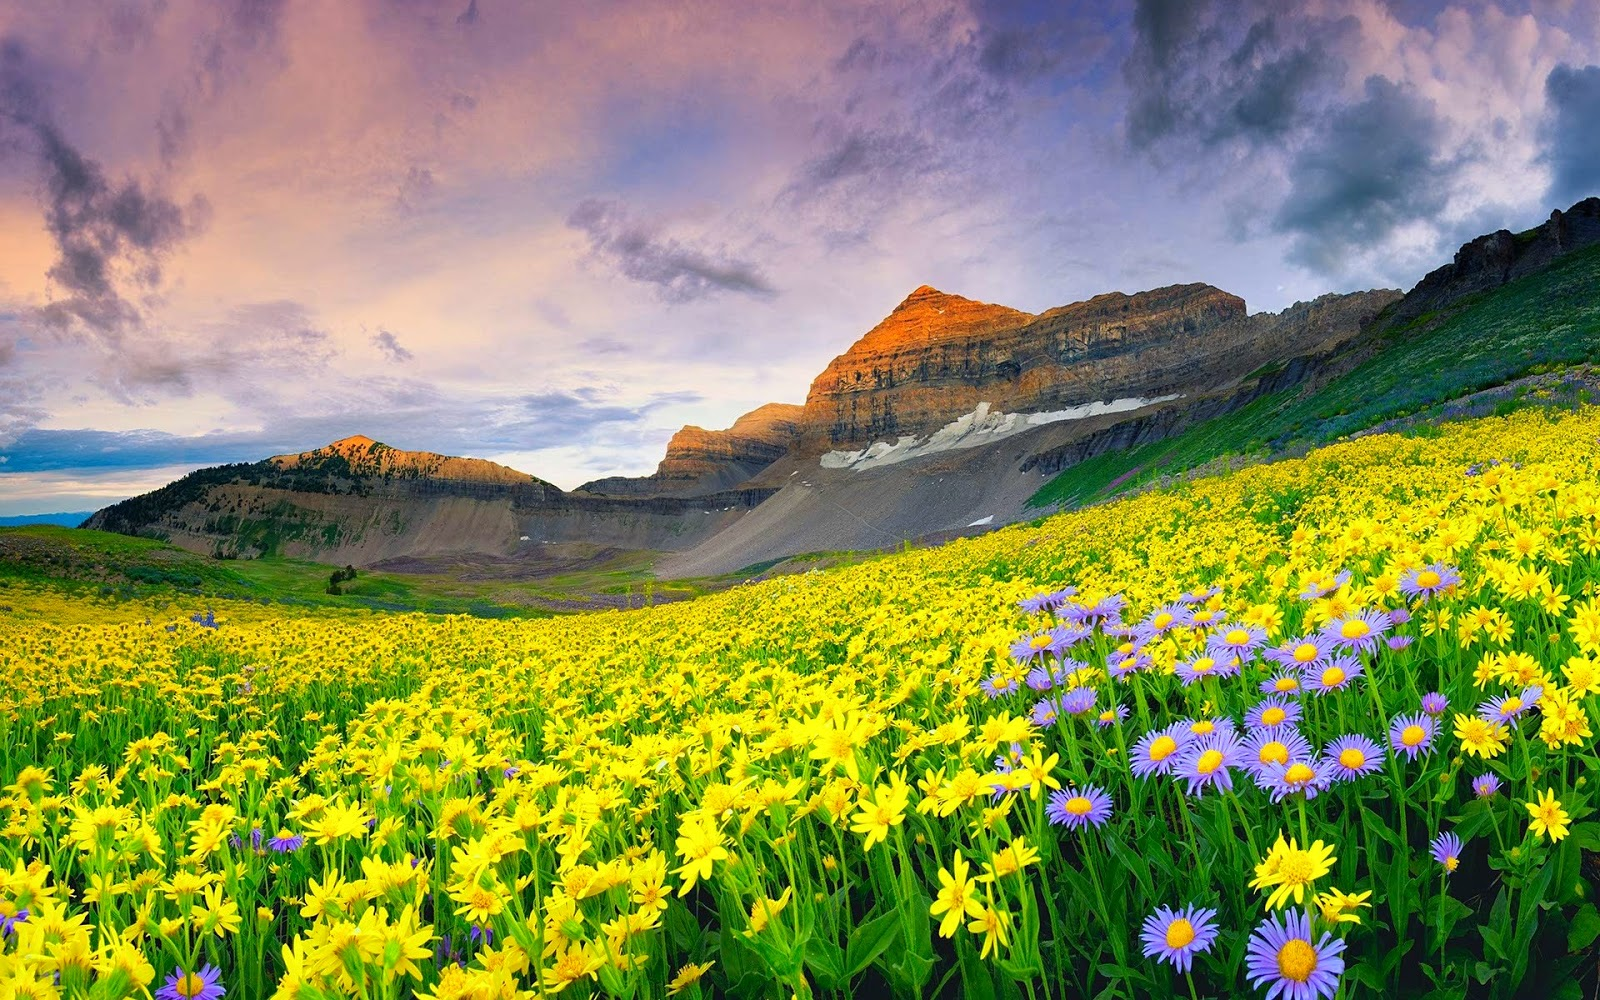 Wallpaper: Mountain Flower: Extreme Beauty of Nature